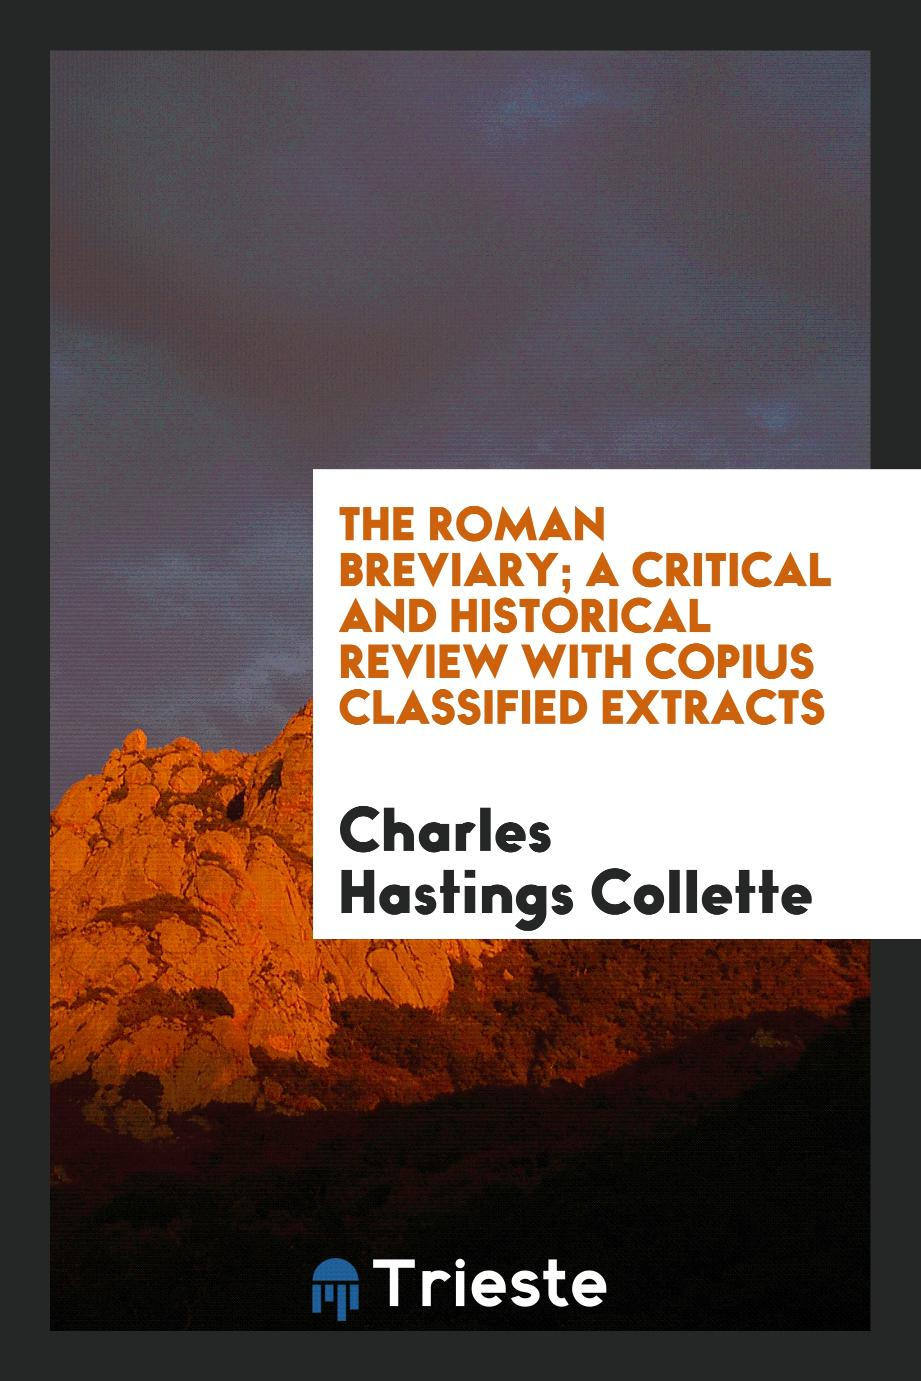 The Roman Breviary; A Critical and Historical Review with Copius Classified Extracts